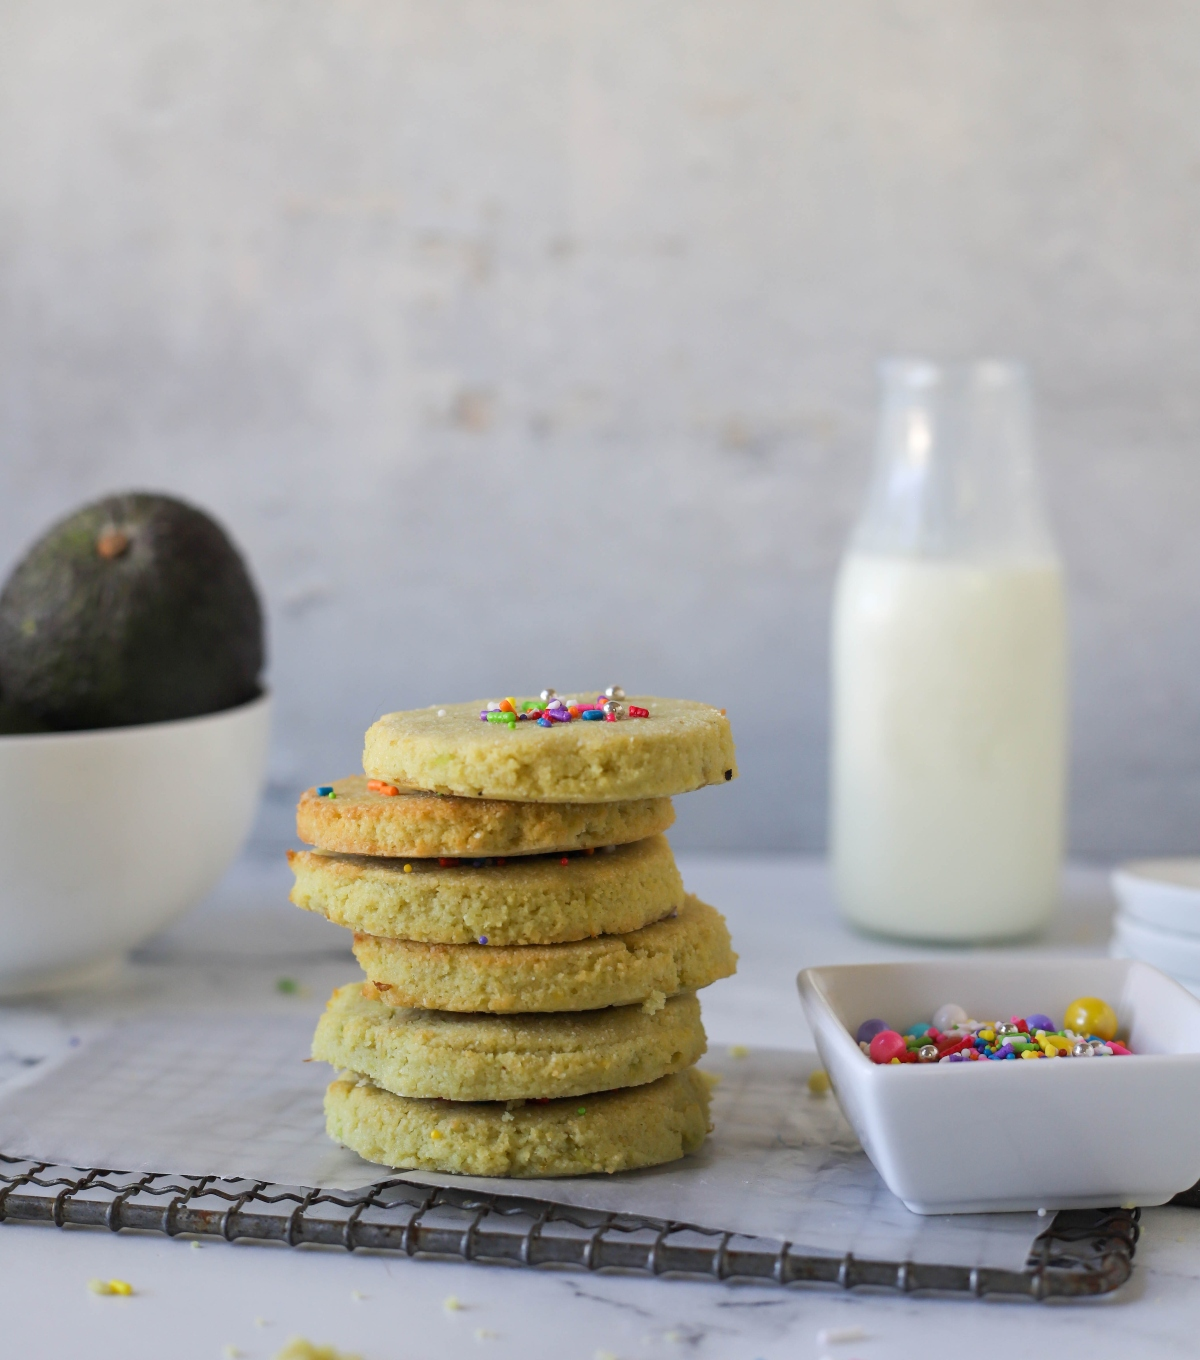 Keto sugar cookies stacked on top of each other